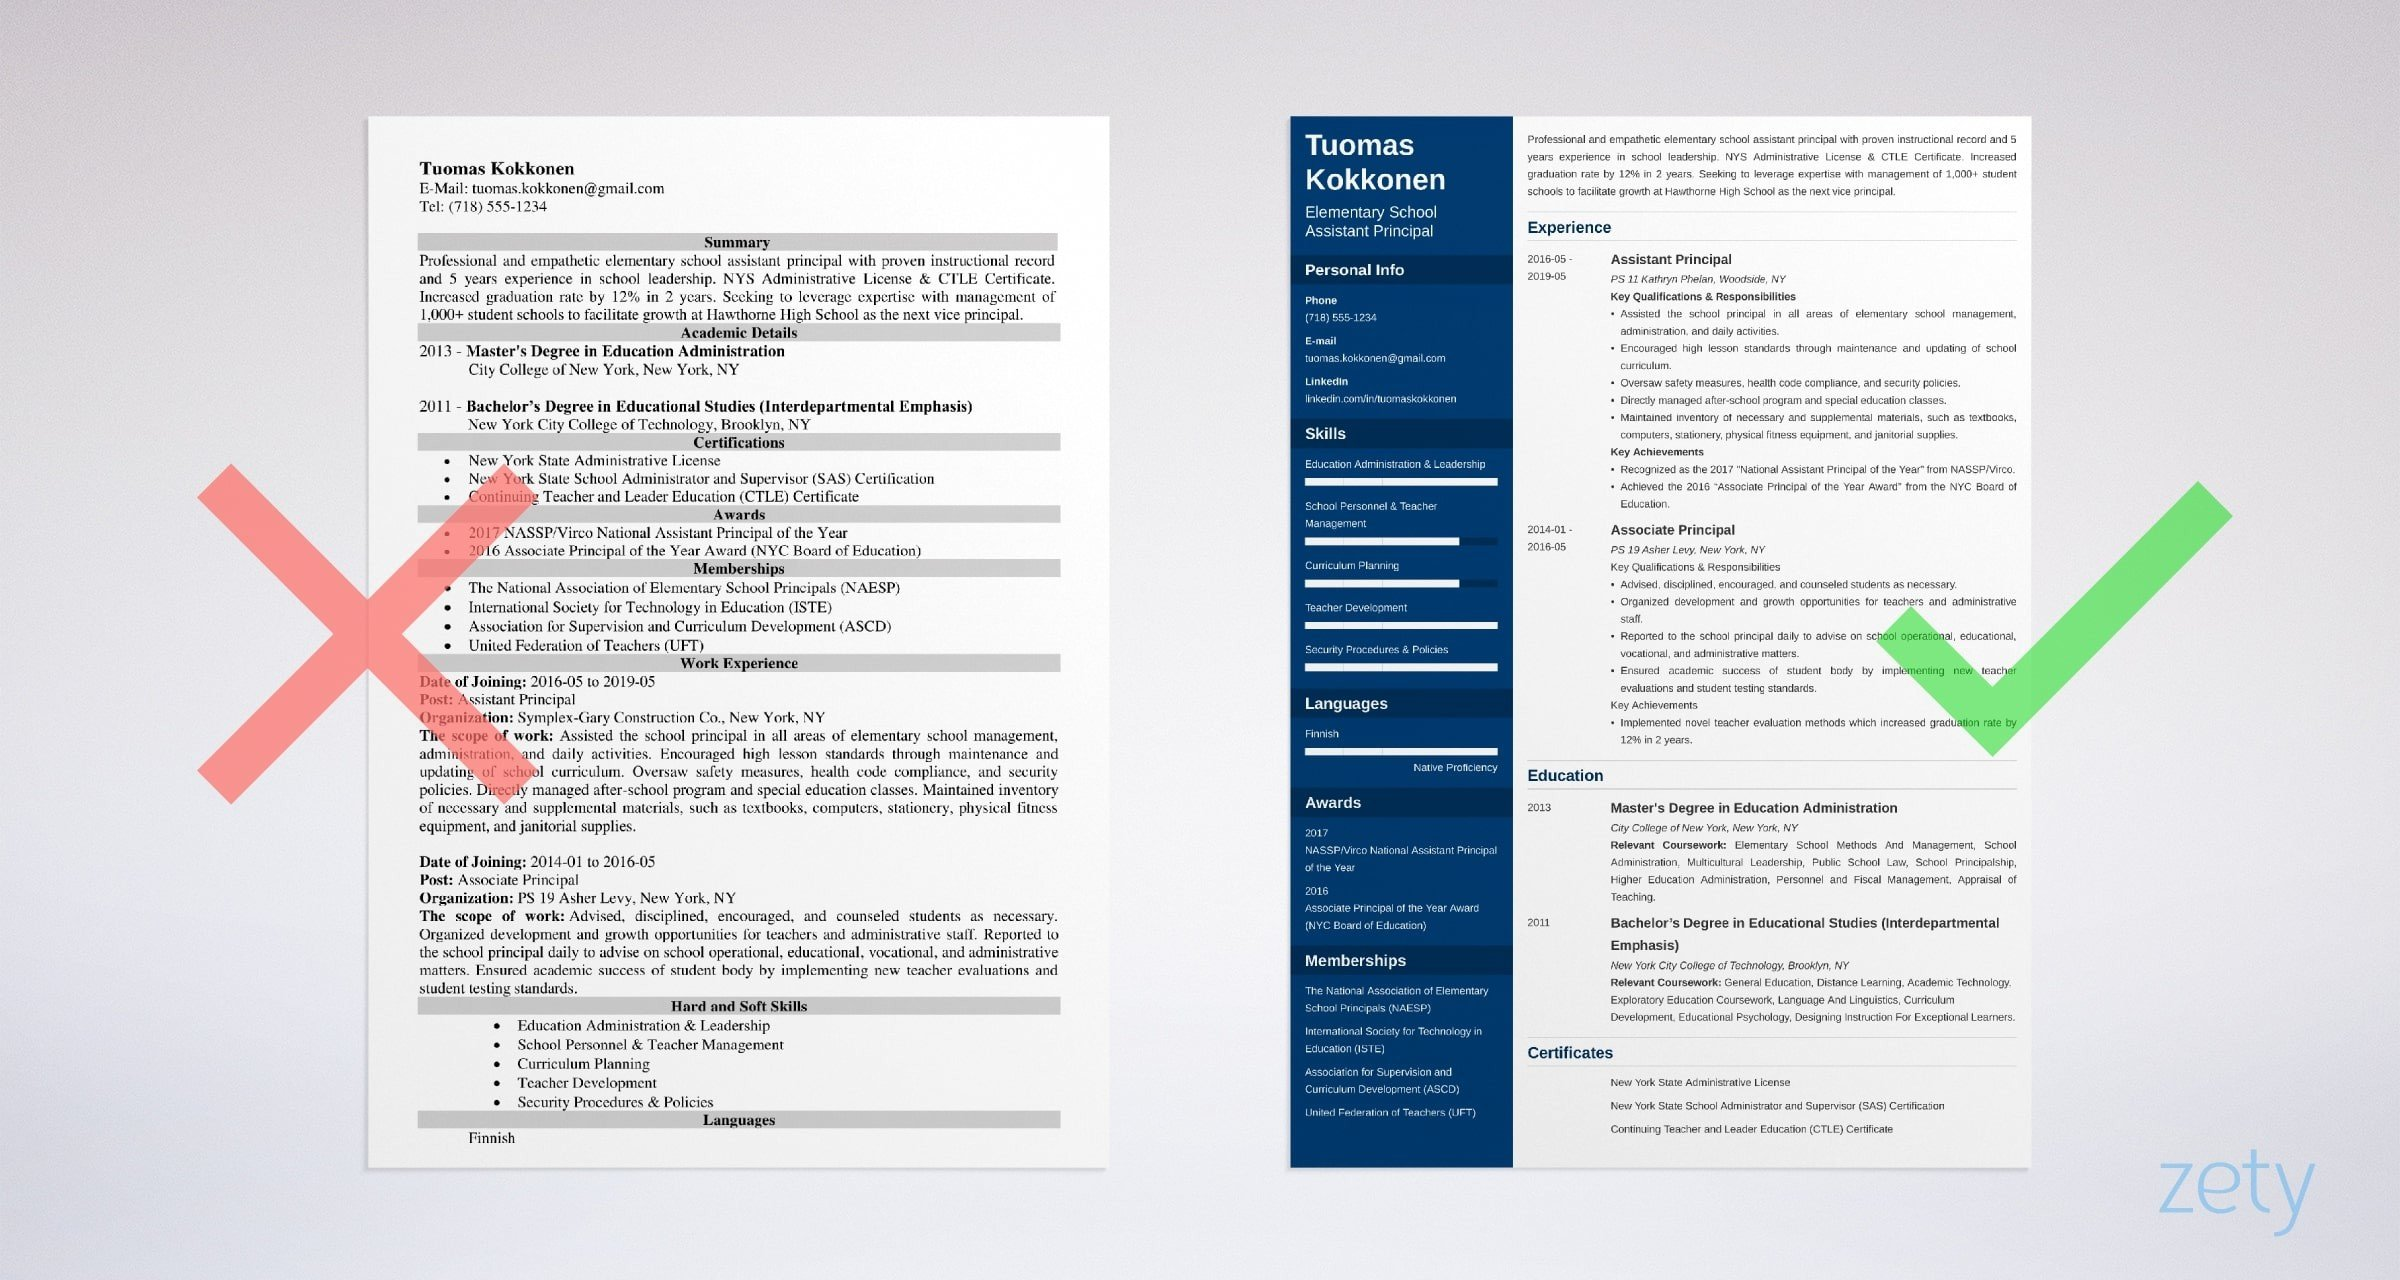 assistant principal resume template guide examples cover letter example call center Resume Assistant Principal Resume Cover Letter